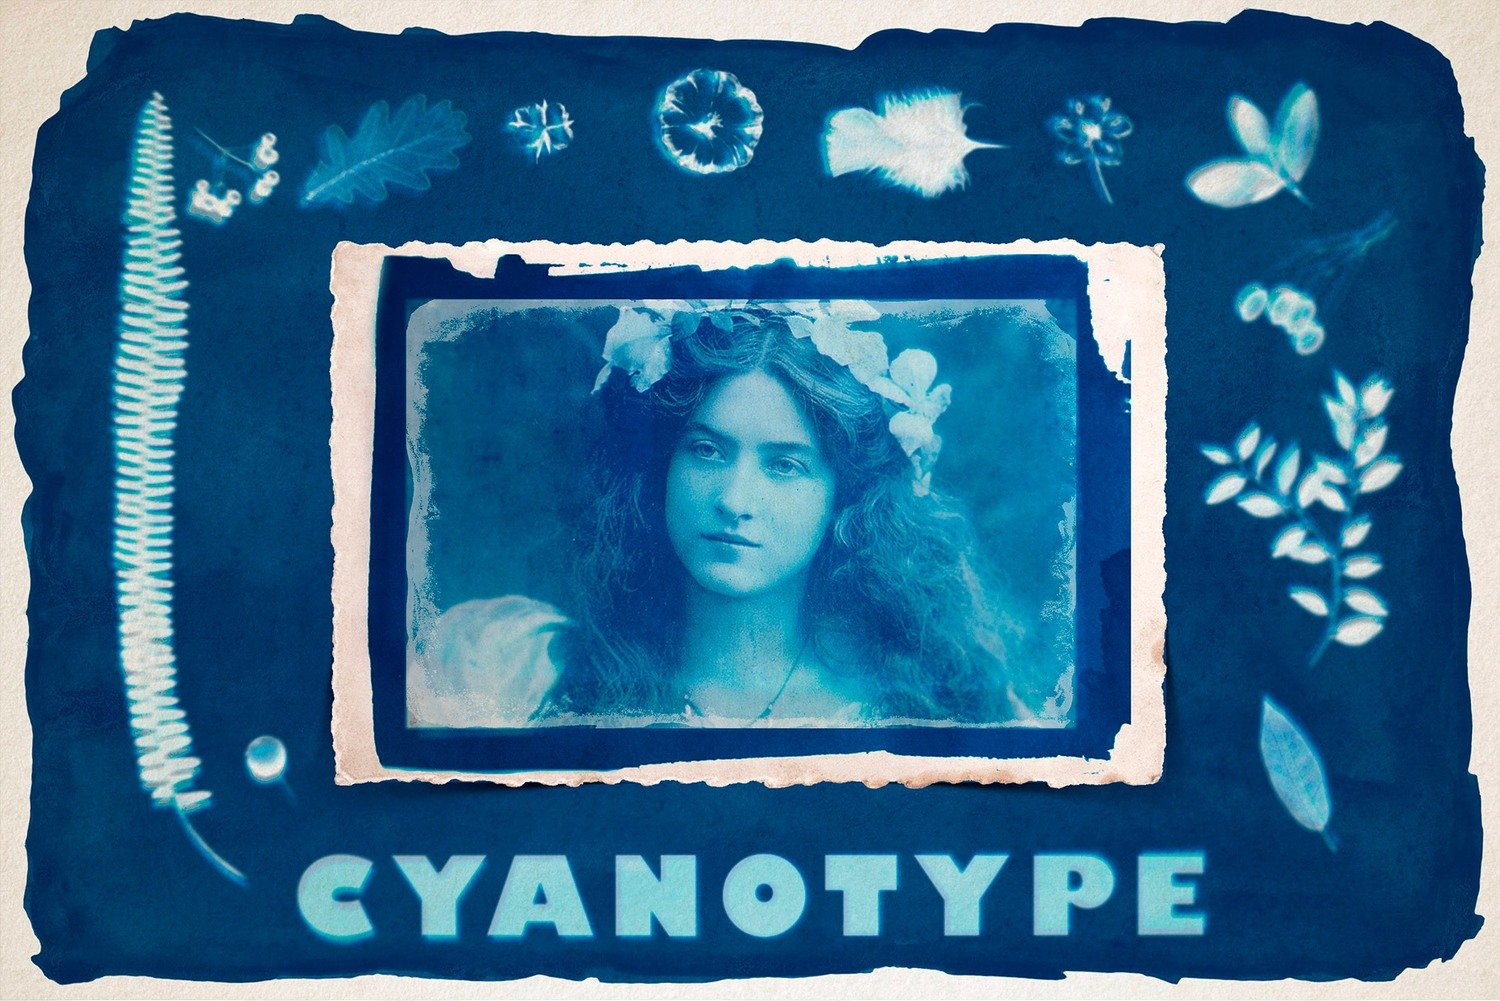 CYANOTYPE Digital Photoshop Effect